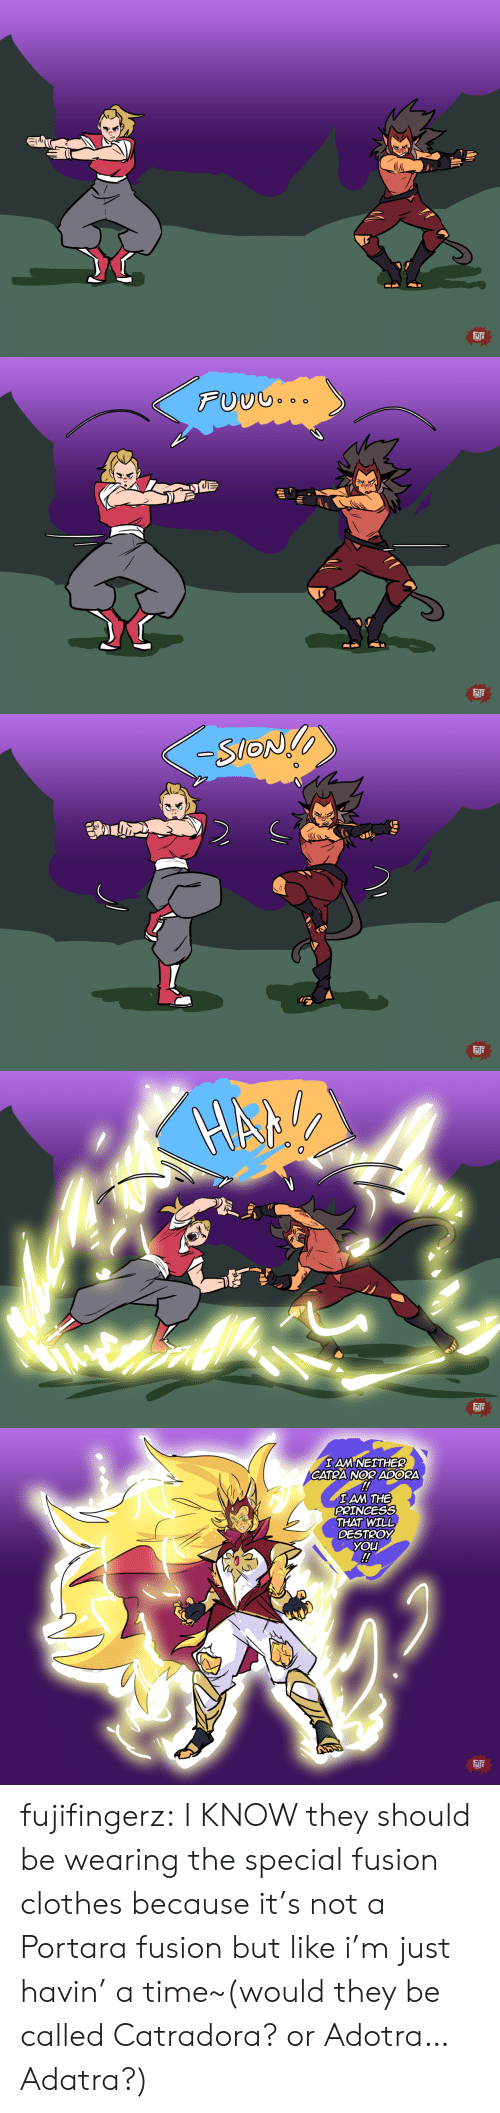 iam: FJF   FUUG..  FJF   -SlON  10  FJi   IAM NEITHER  CATRA NOR ADORA  !  IAM THE  PRINCESS  THAT WILL  DESTROY  YOU  !  FIJF fujifingerz:  I KNOW they should be wearing the special fusion clothes because it's not a Portara fusion but like i'm just havin' a time~(would they be called Catradora? or Adotra…Adatra?)